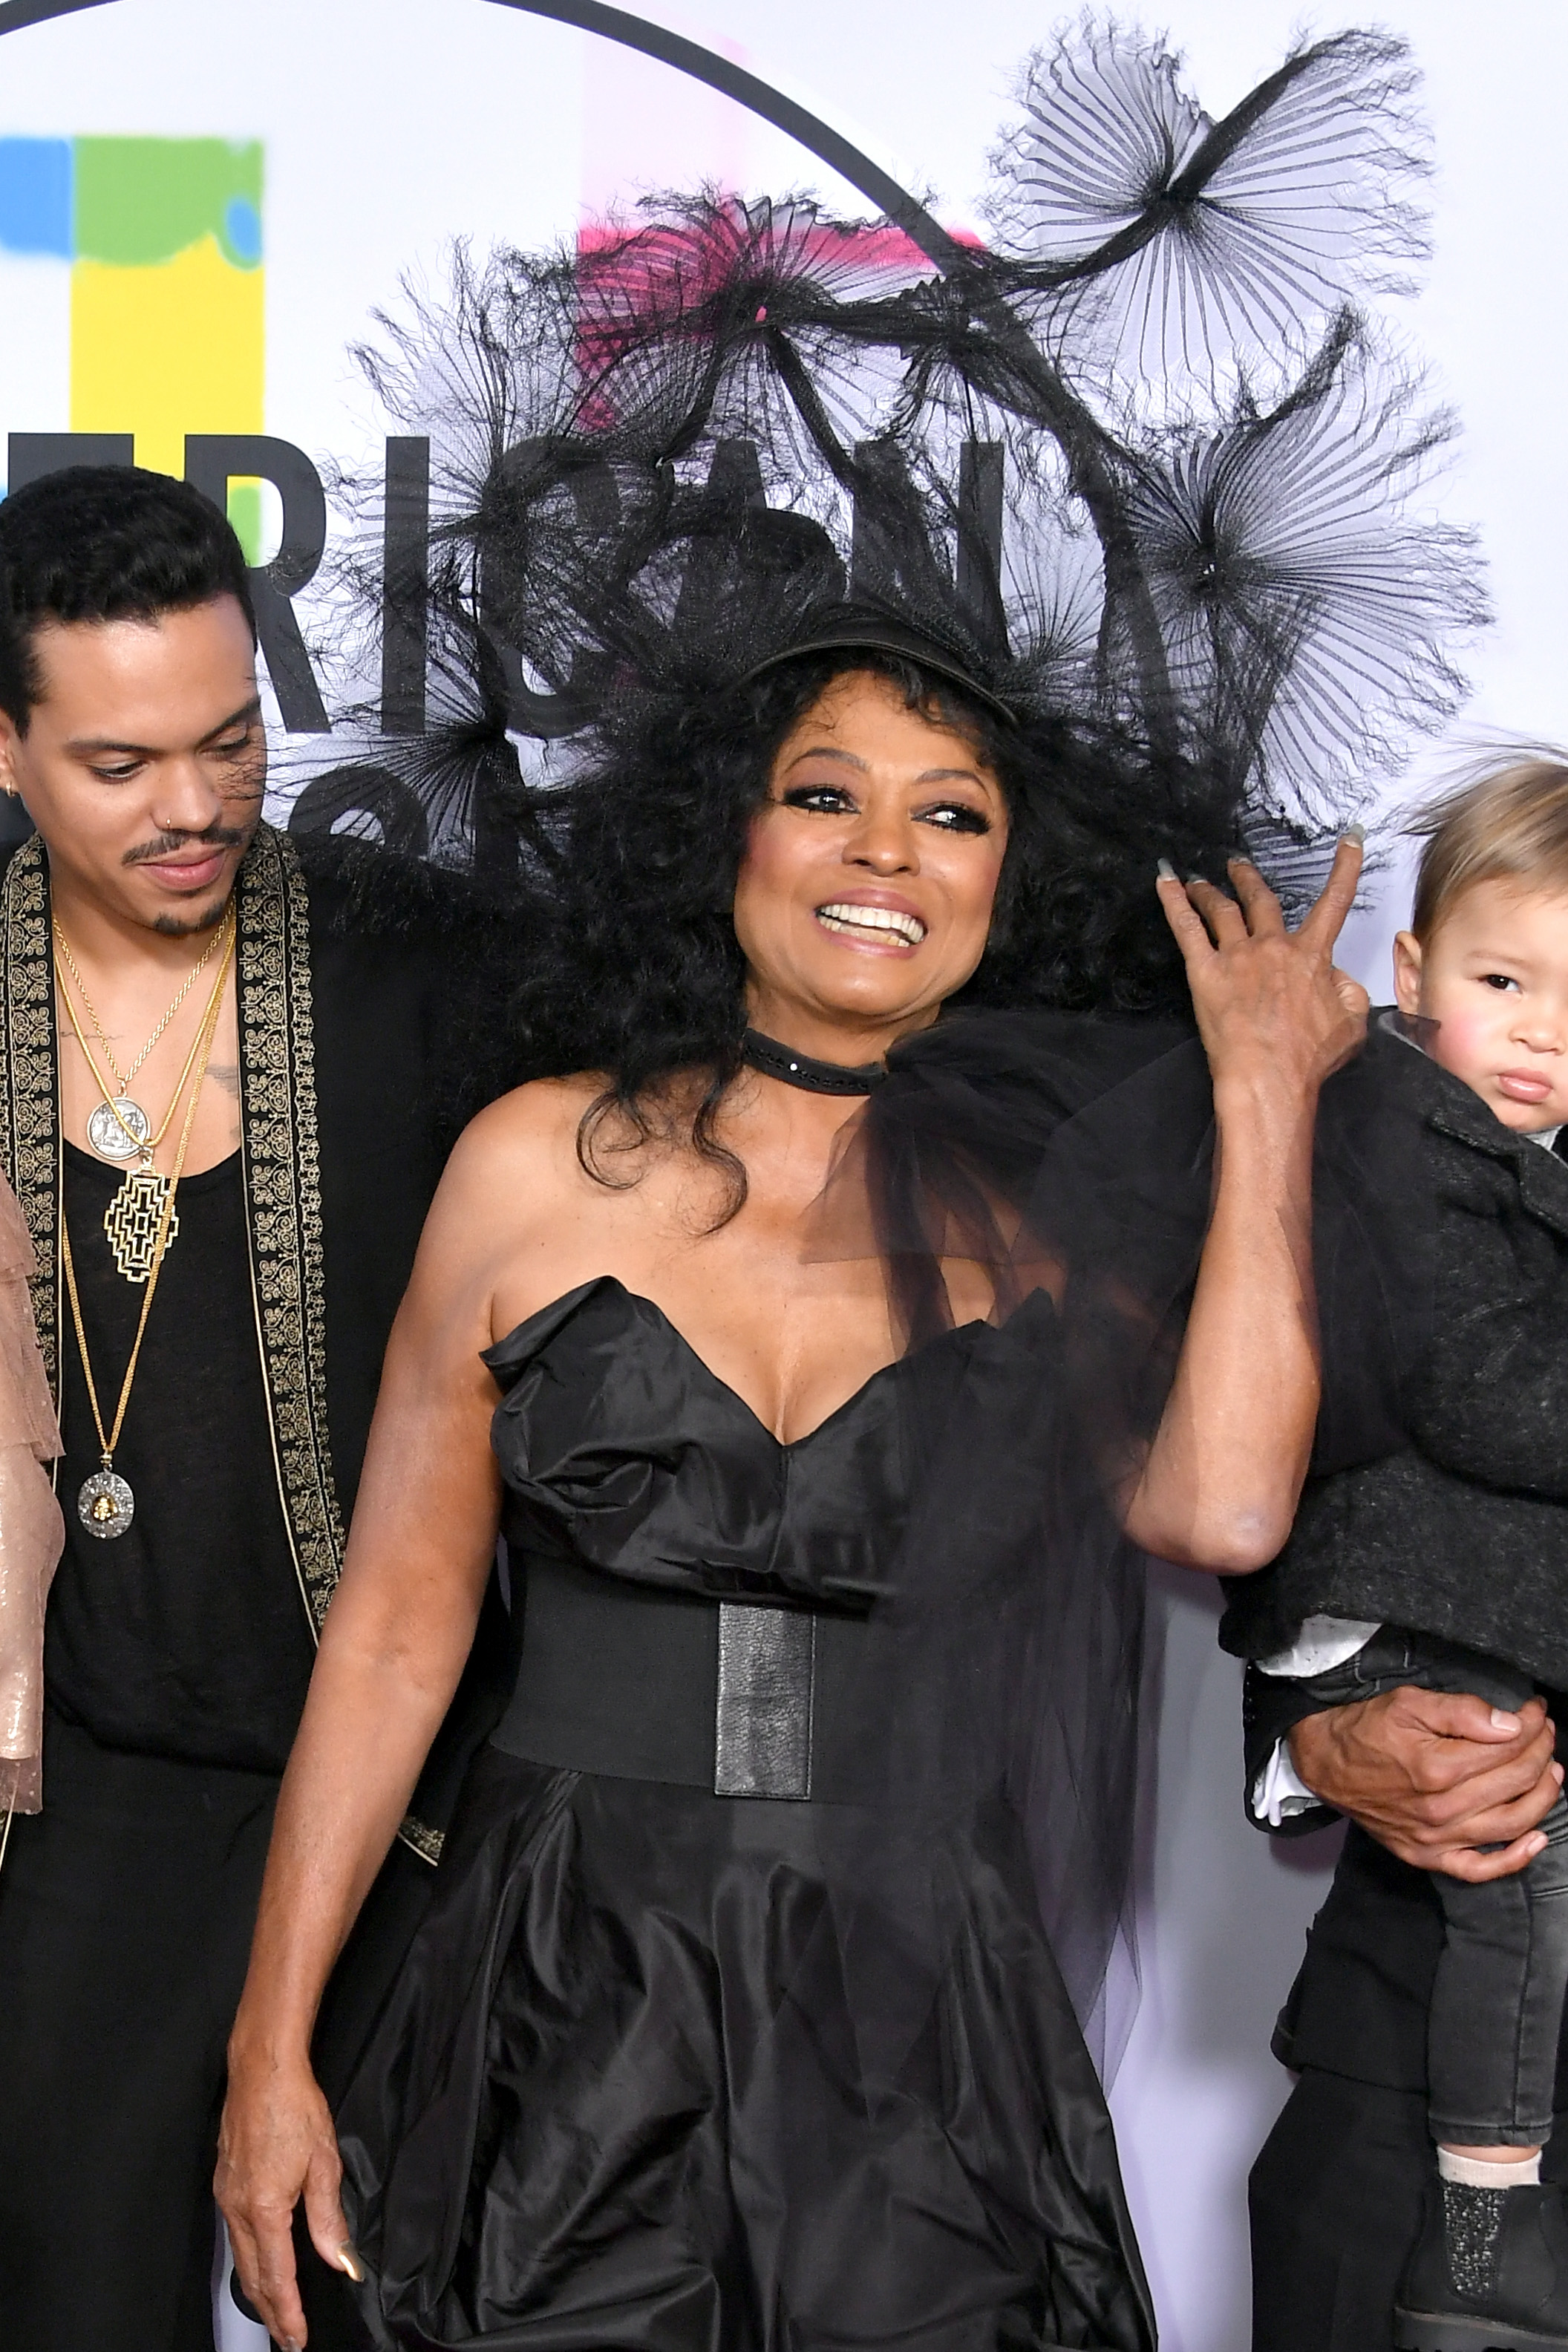 <div class='meta'><div class='origin-logo' data-origin='none'></div><span class='caption-text' data-credit='Neilson Barnard/Getty Images'>Evan Ross (L) and Diana Ross attend the 2017 American Music Awards at Microsoft Theater on November 19, 2017 in Los Angeles, California.</span></div>